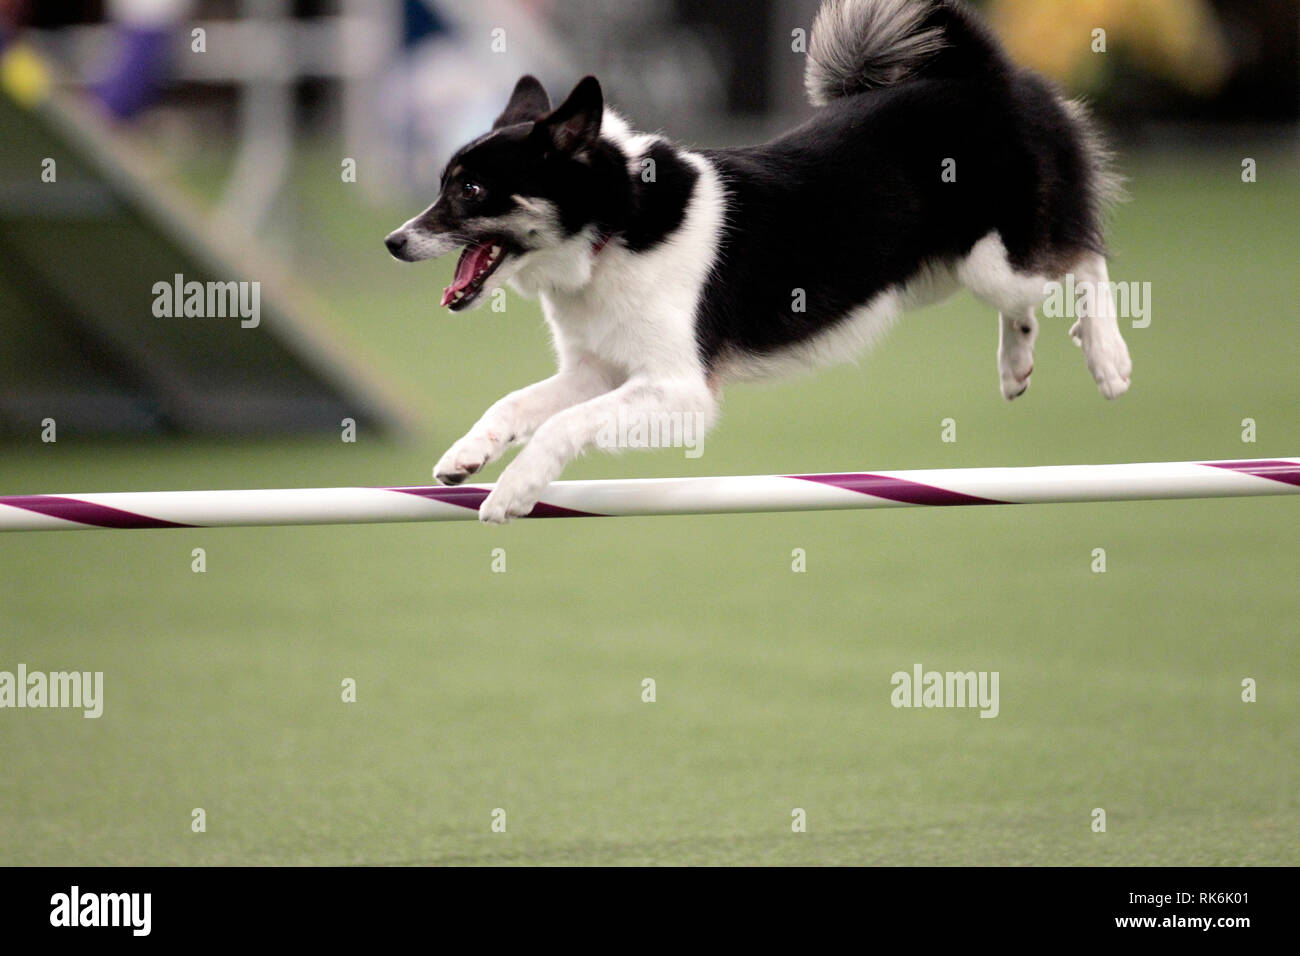 New York, USA. 9th Feb 2019. Loa, an Icelandic Sheepdog, competing in the preliminaries of the Westminster Kennel Club's Master's Agility Championship. Credit: Adam Stoltman/Alamy Live News Stock Photo